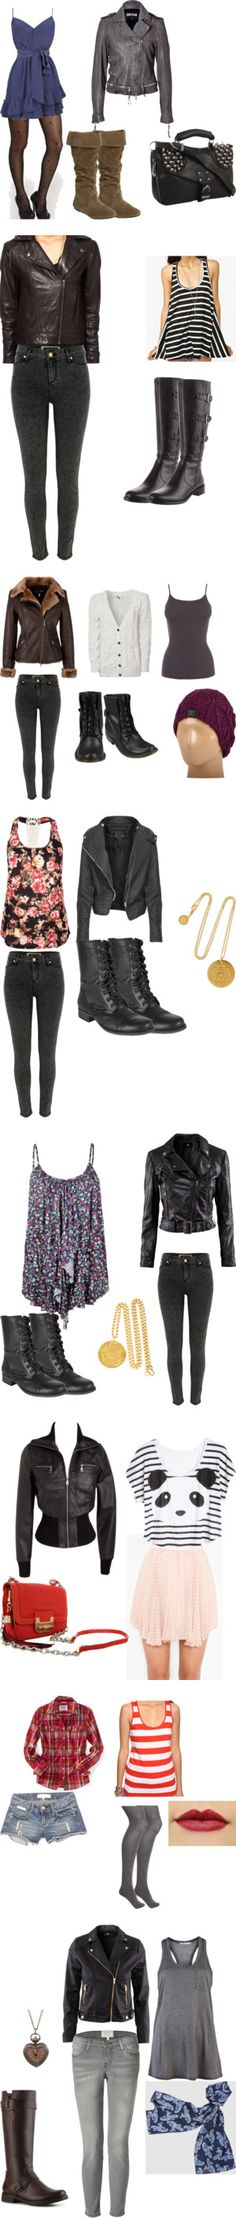 """Allison Argent Favorites!"" by rawhitwell on Polyvore LOVE her style!"